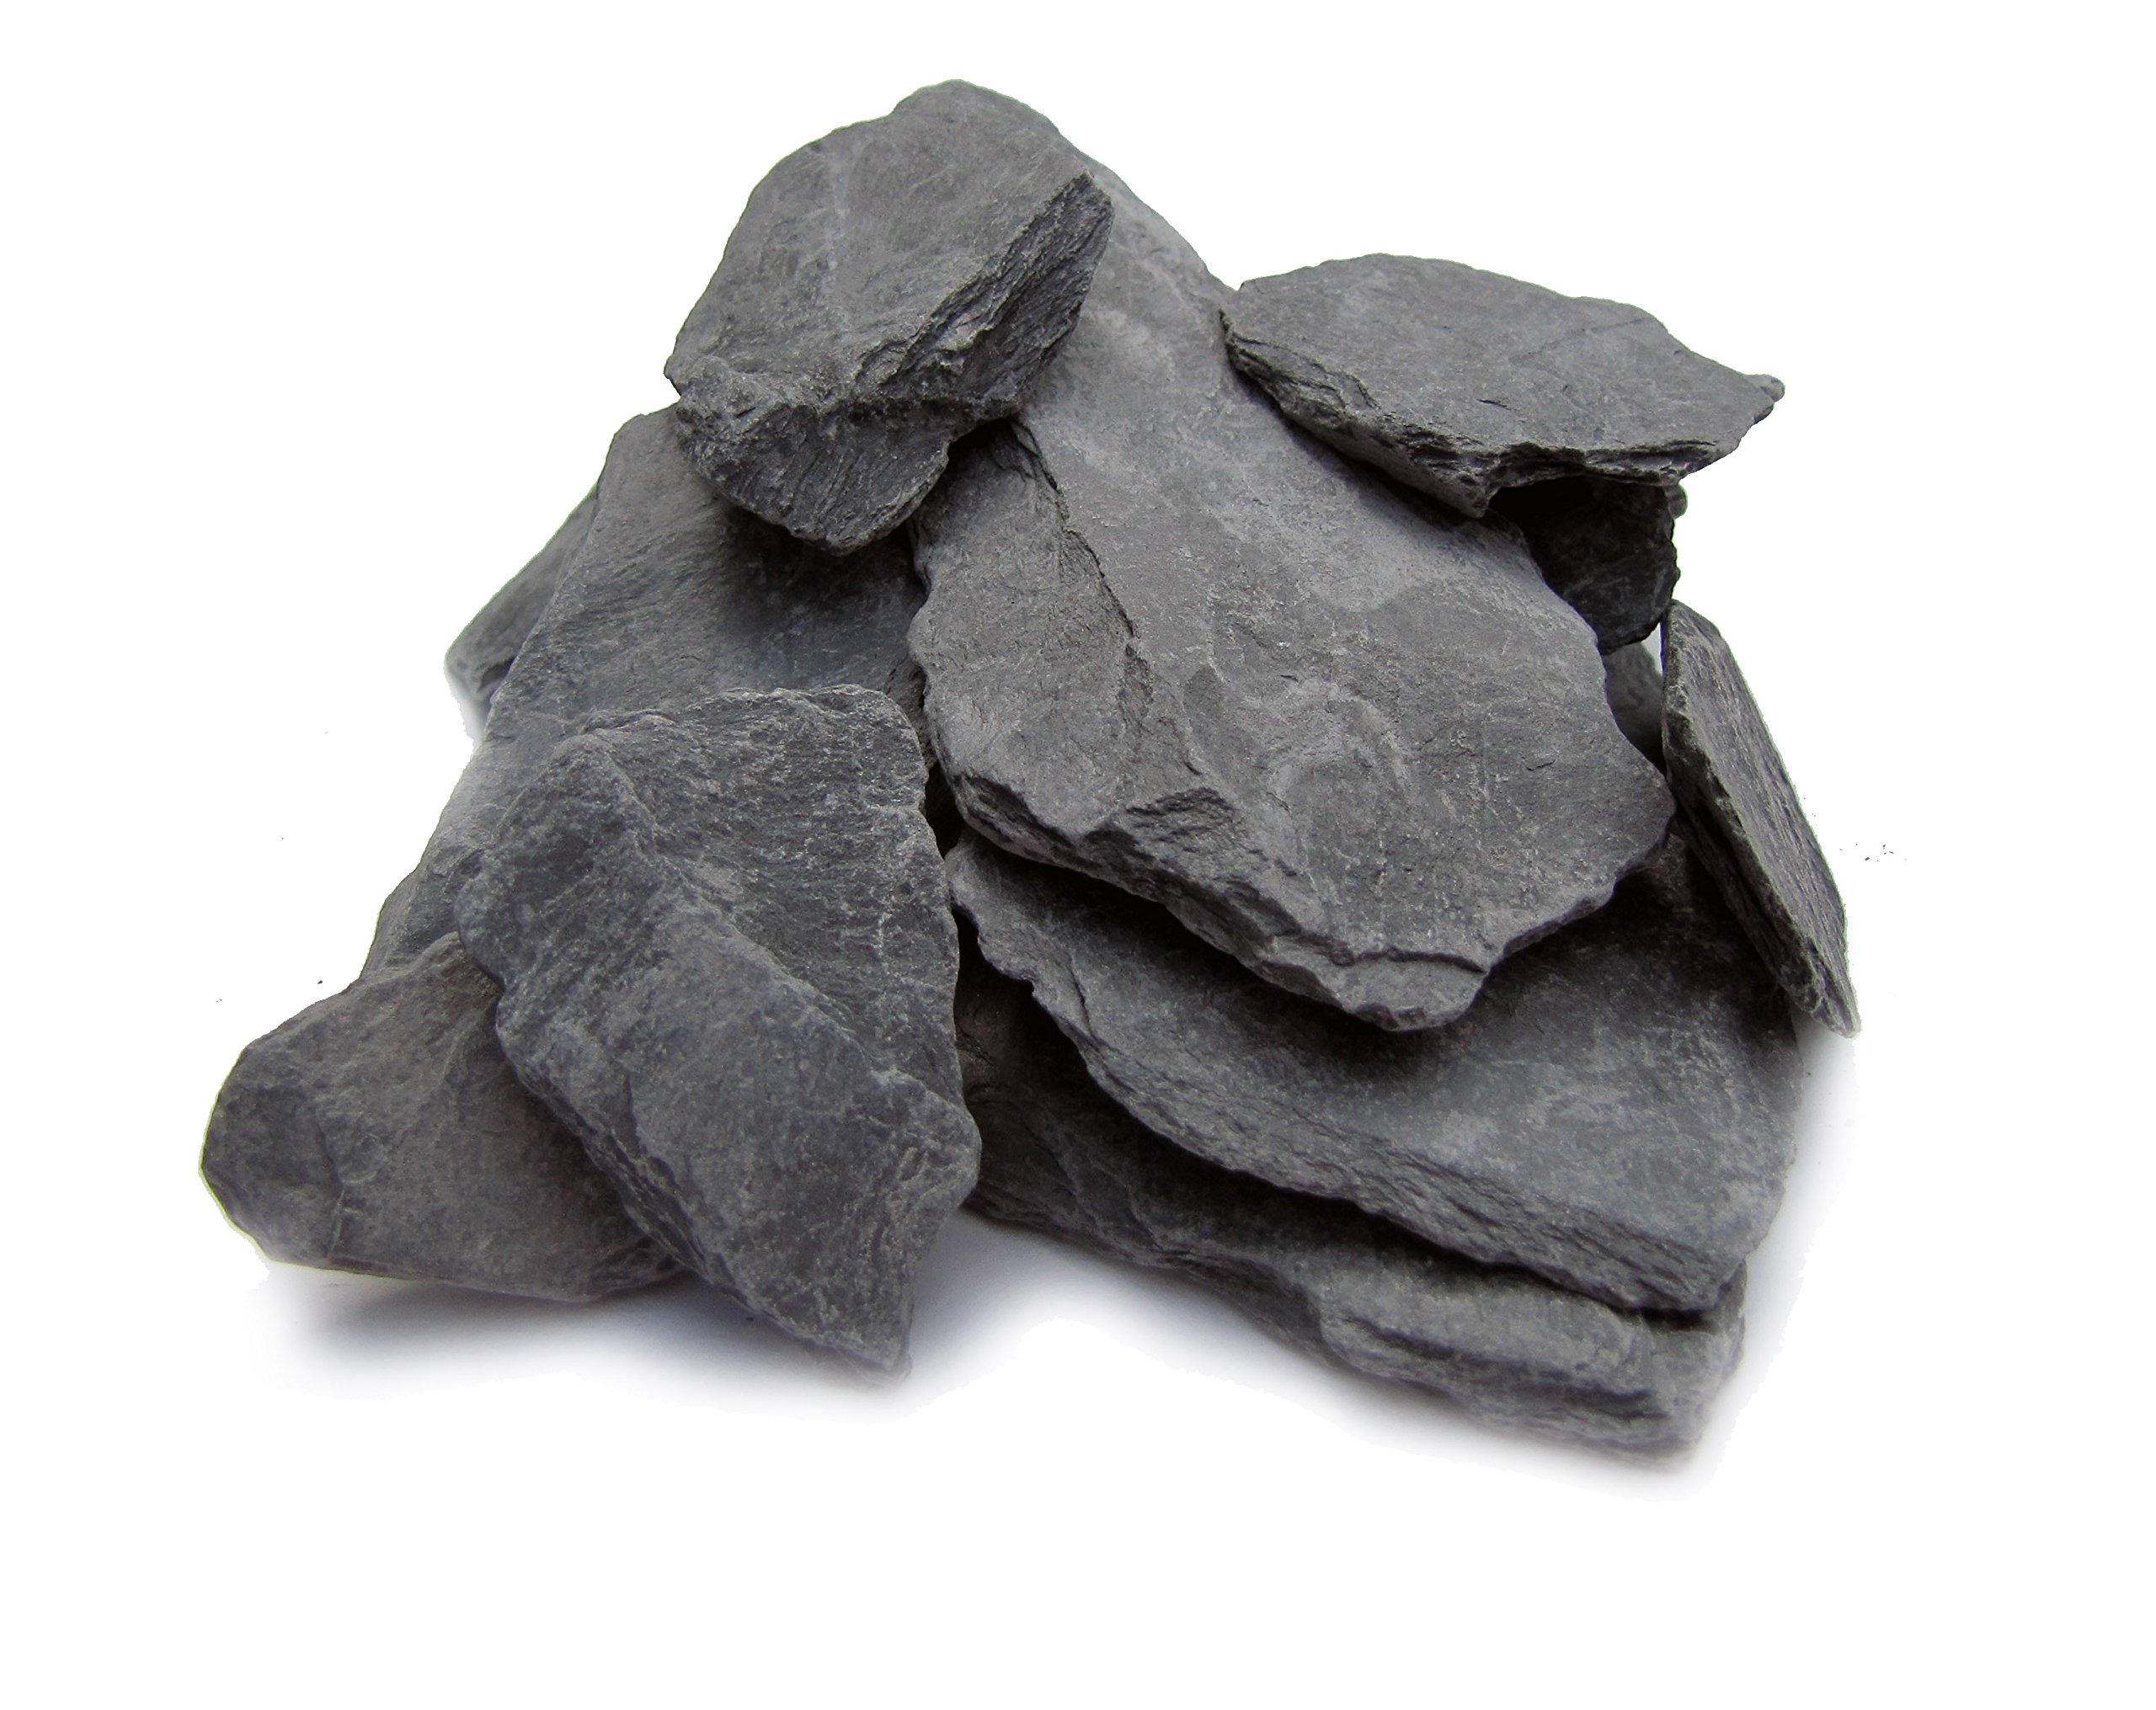 Natural Slate Stone -1 to 3 inch Rocks for Miniature or Fairy Garden, Aquarium, Model Railroad & Wargaming 2lbs